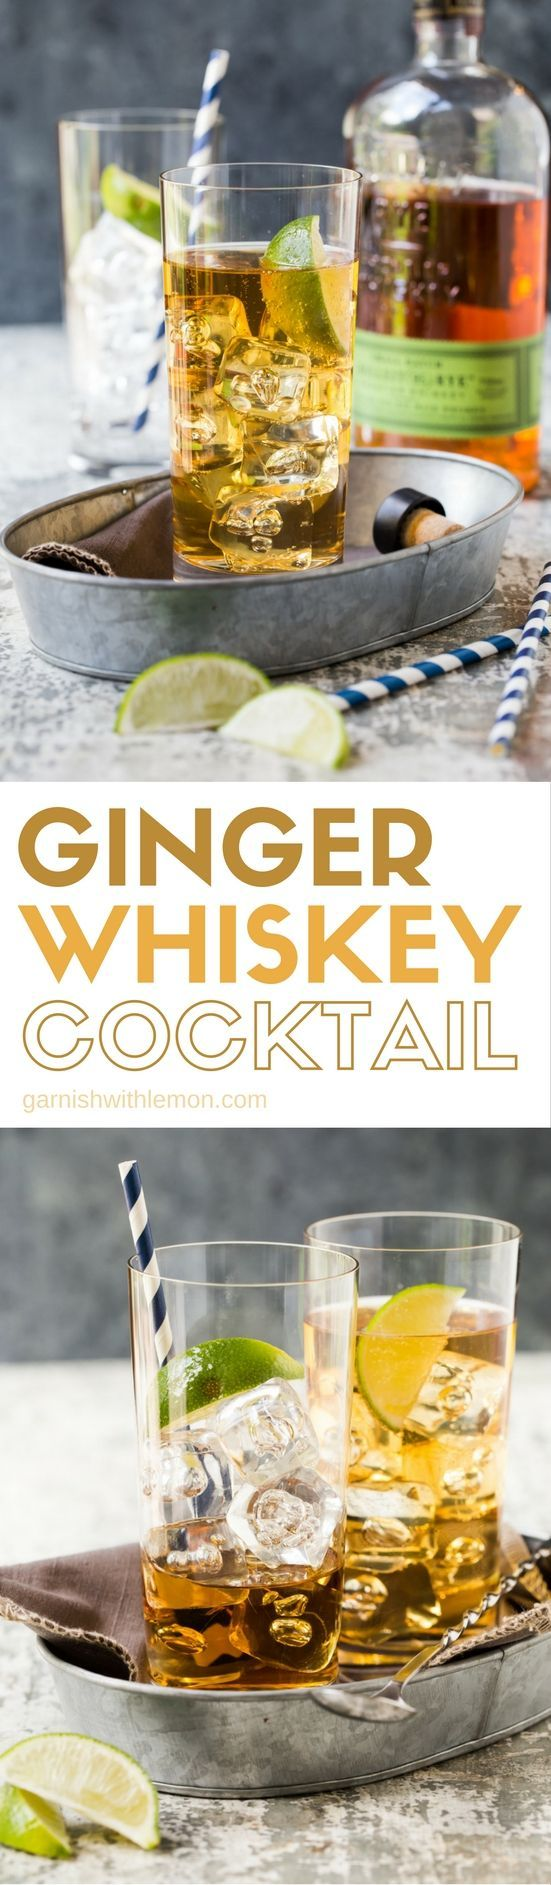 This two ingredient Ginger Whiskey Cocktail recipe is the perfect way to stay…